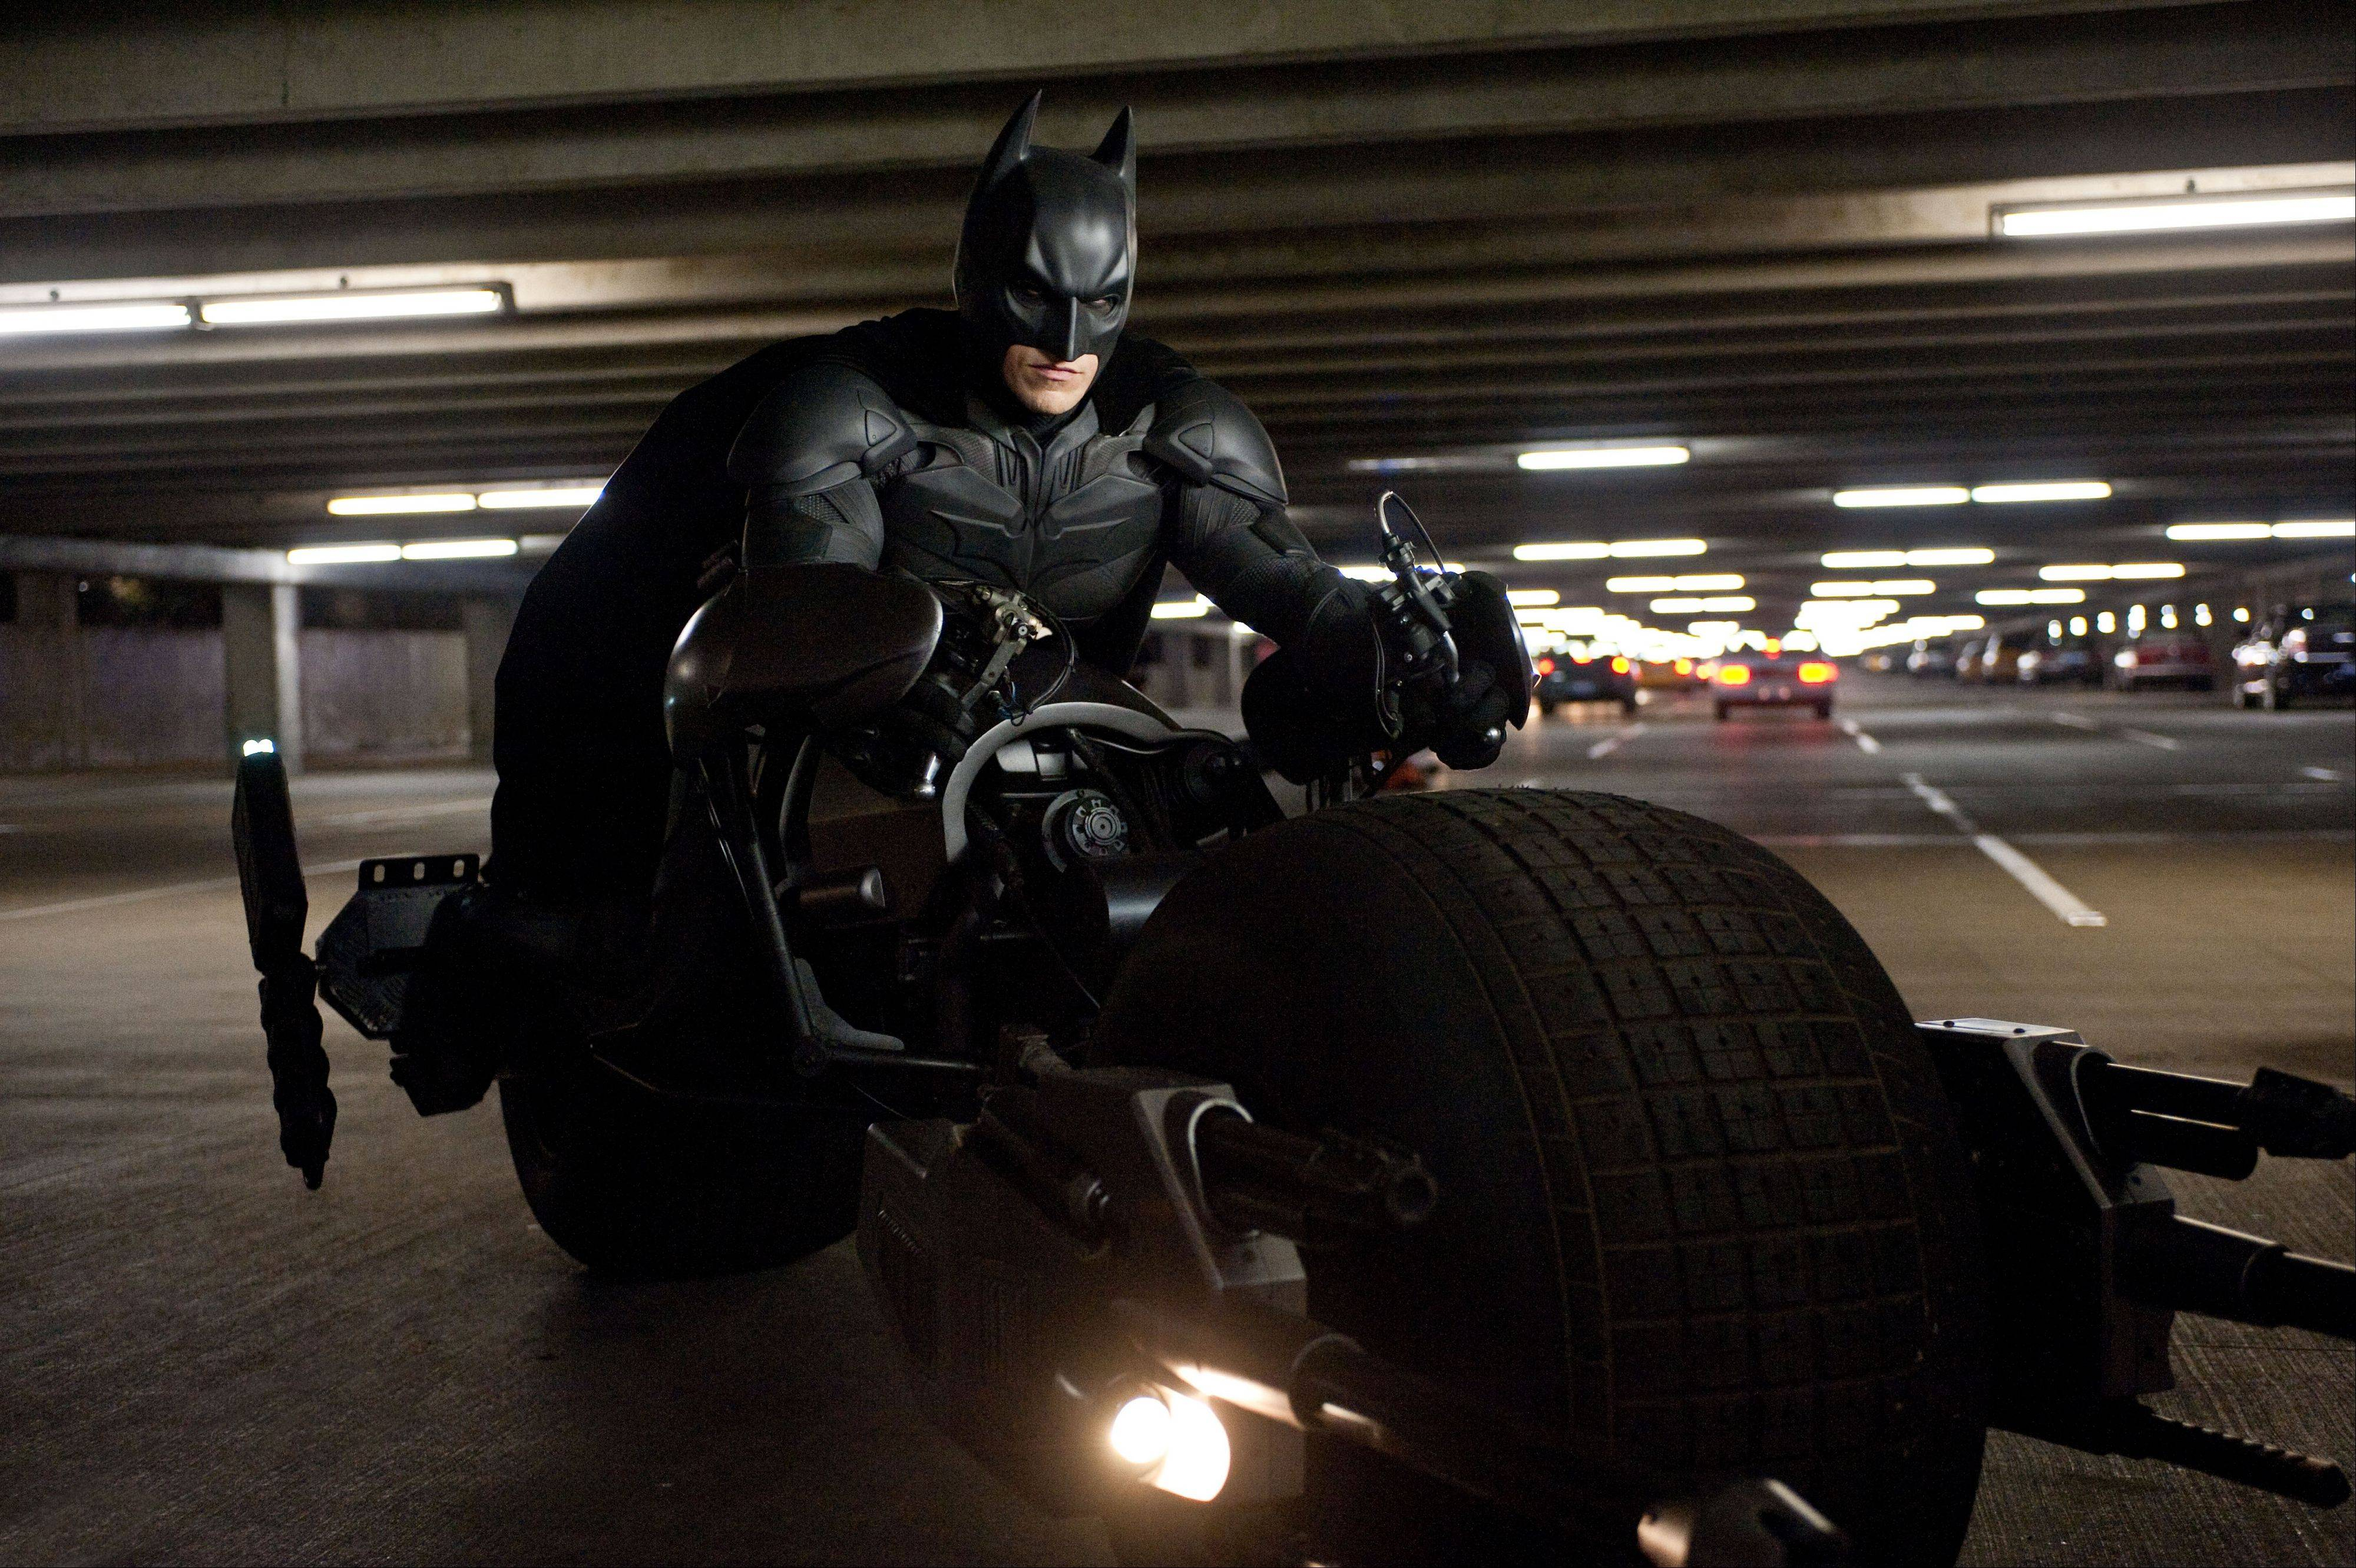 �The Dark Knight Rises� was on track to earn $160 million, which would be a record for 2-D films, over the weekend following a mass shooting at a Colorado screening of the Batman film.